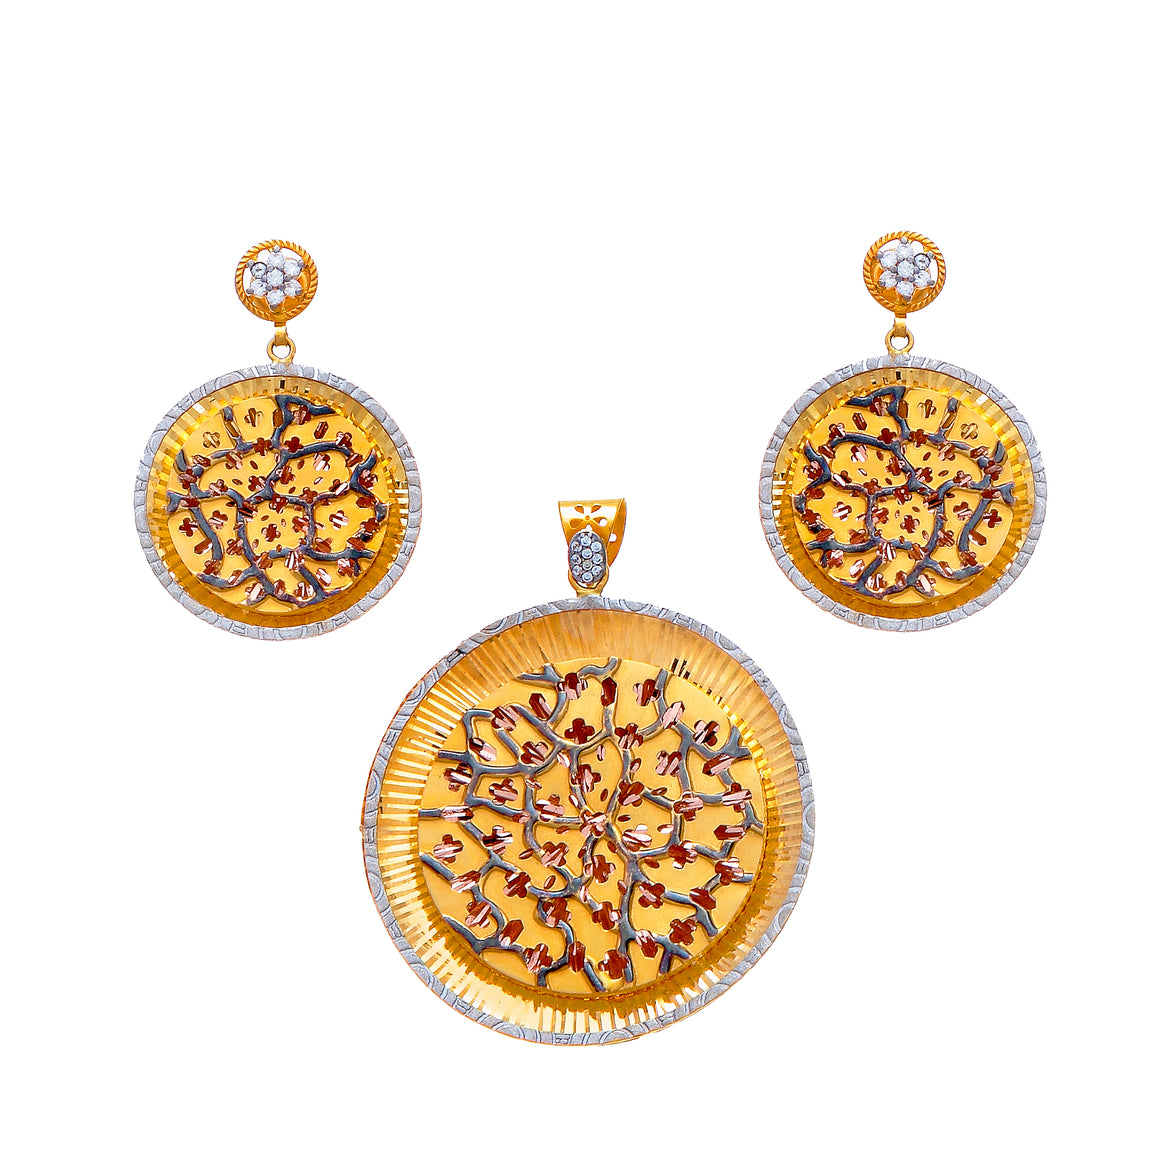 Pendant set with cubic zirconia and beatiful mina artwork. Made in 22k gold.